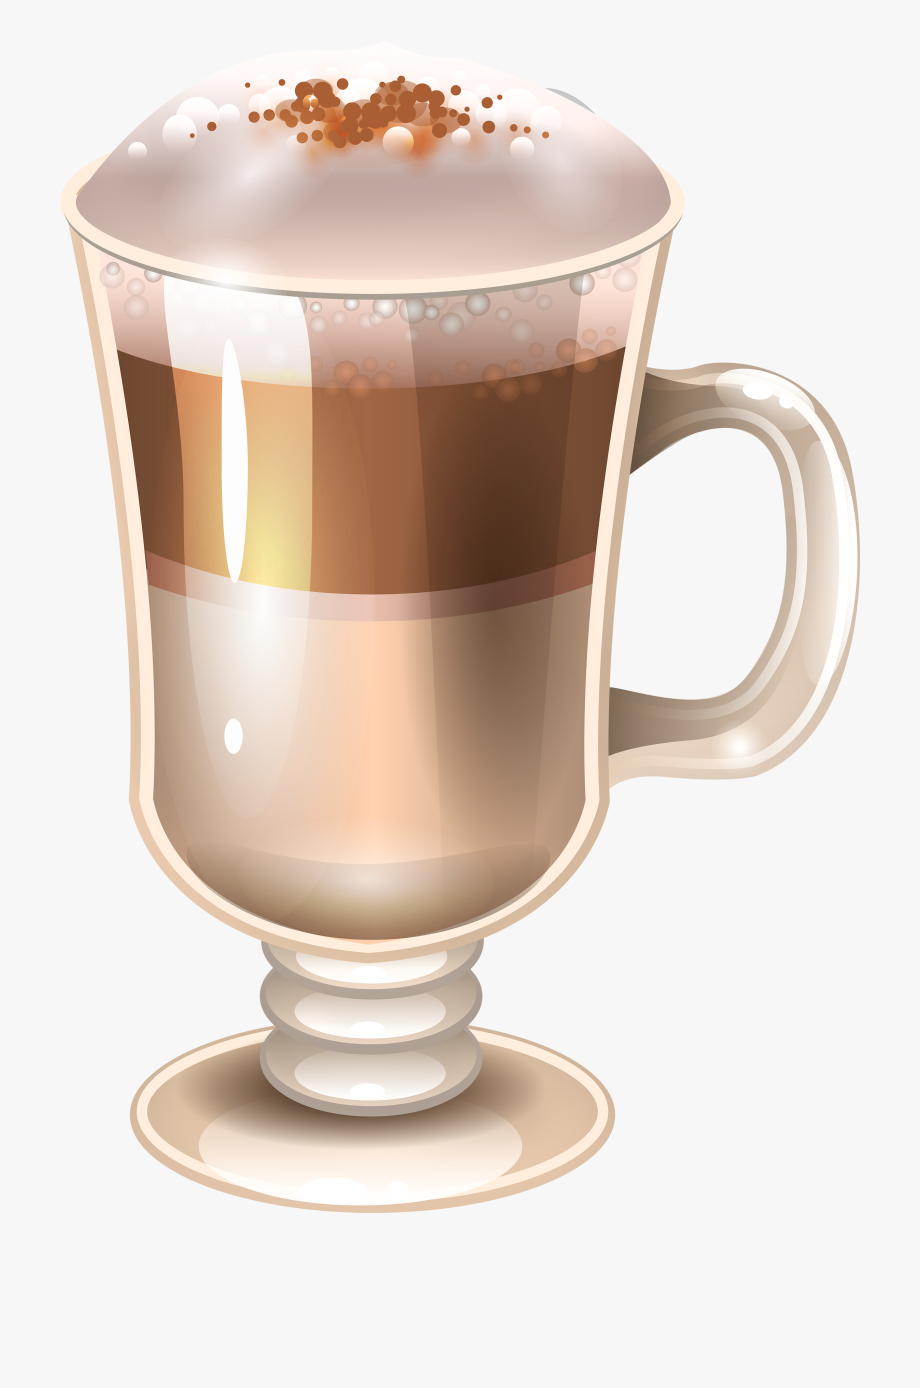 Coffee Clip Art Free Clipart Images.